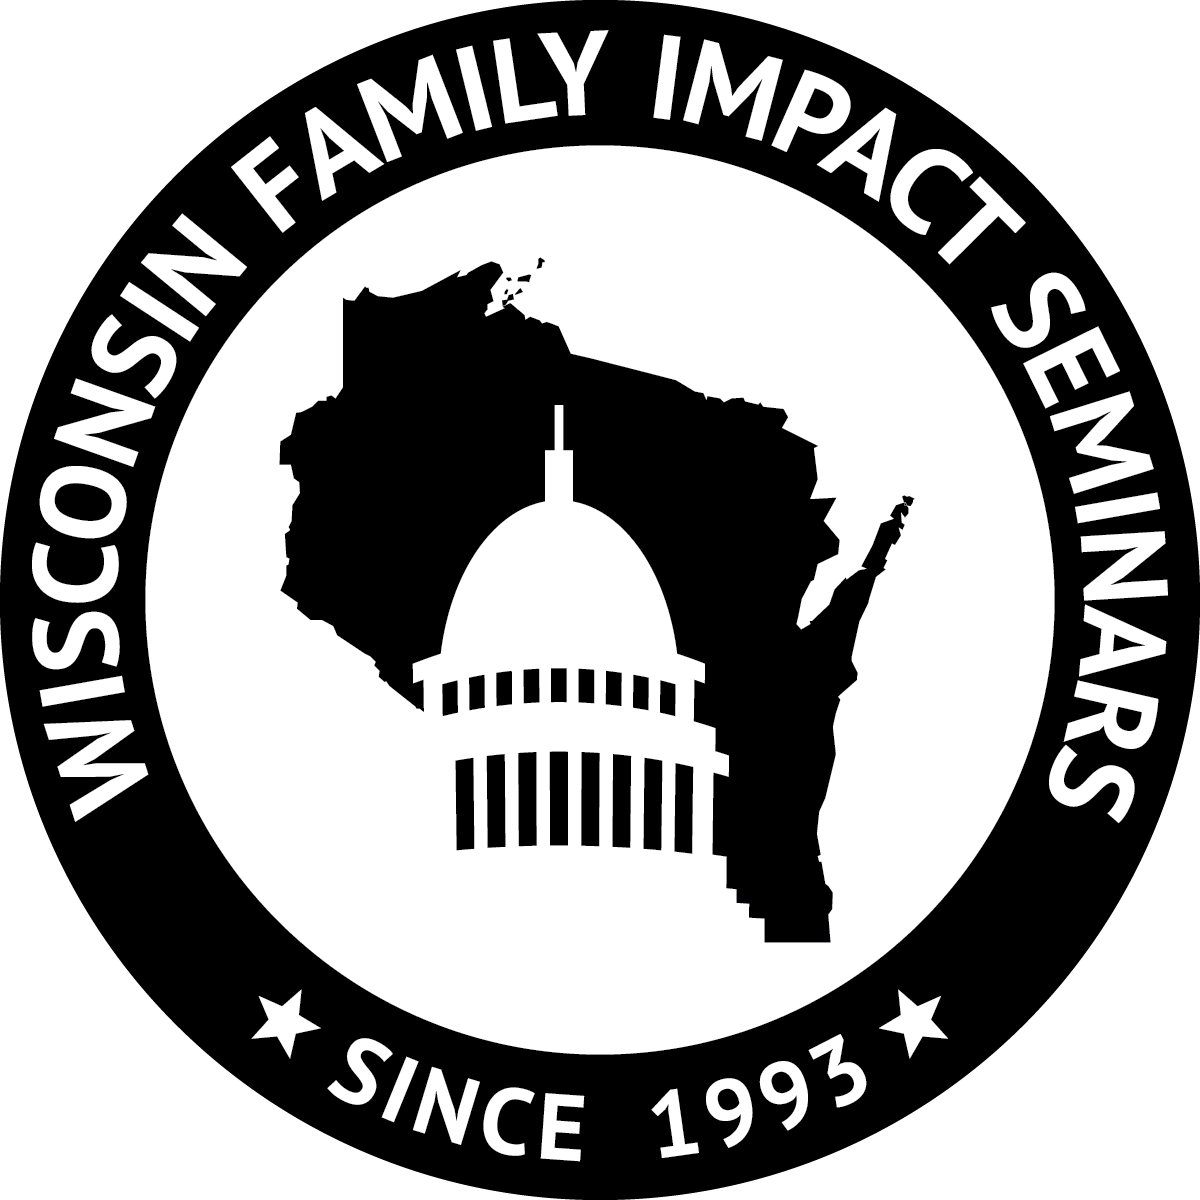 Evidence clipart unbiased. Wisconsin family impact seminars